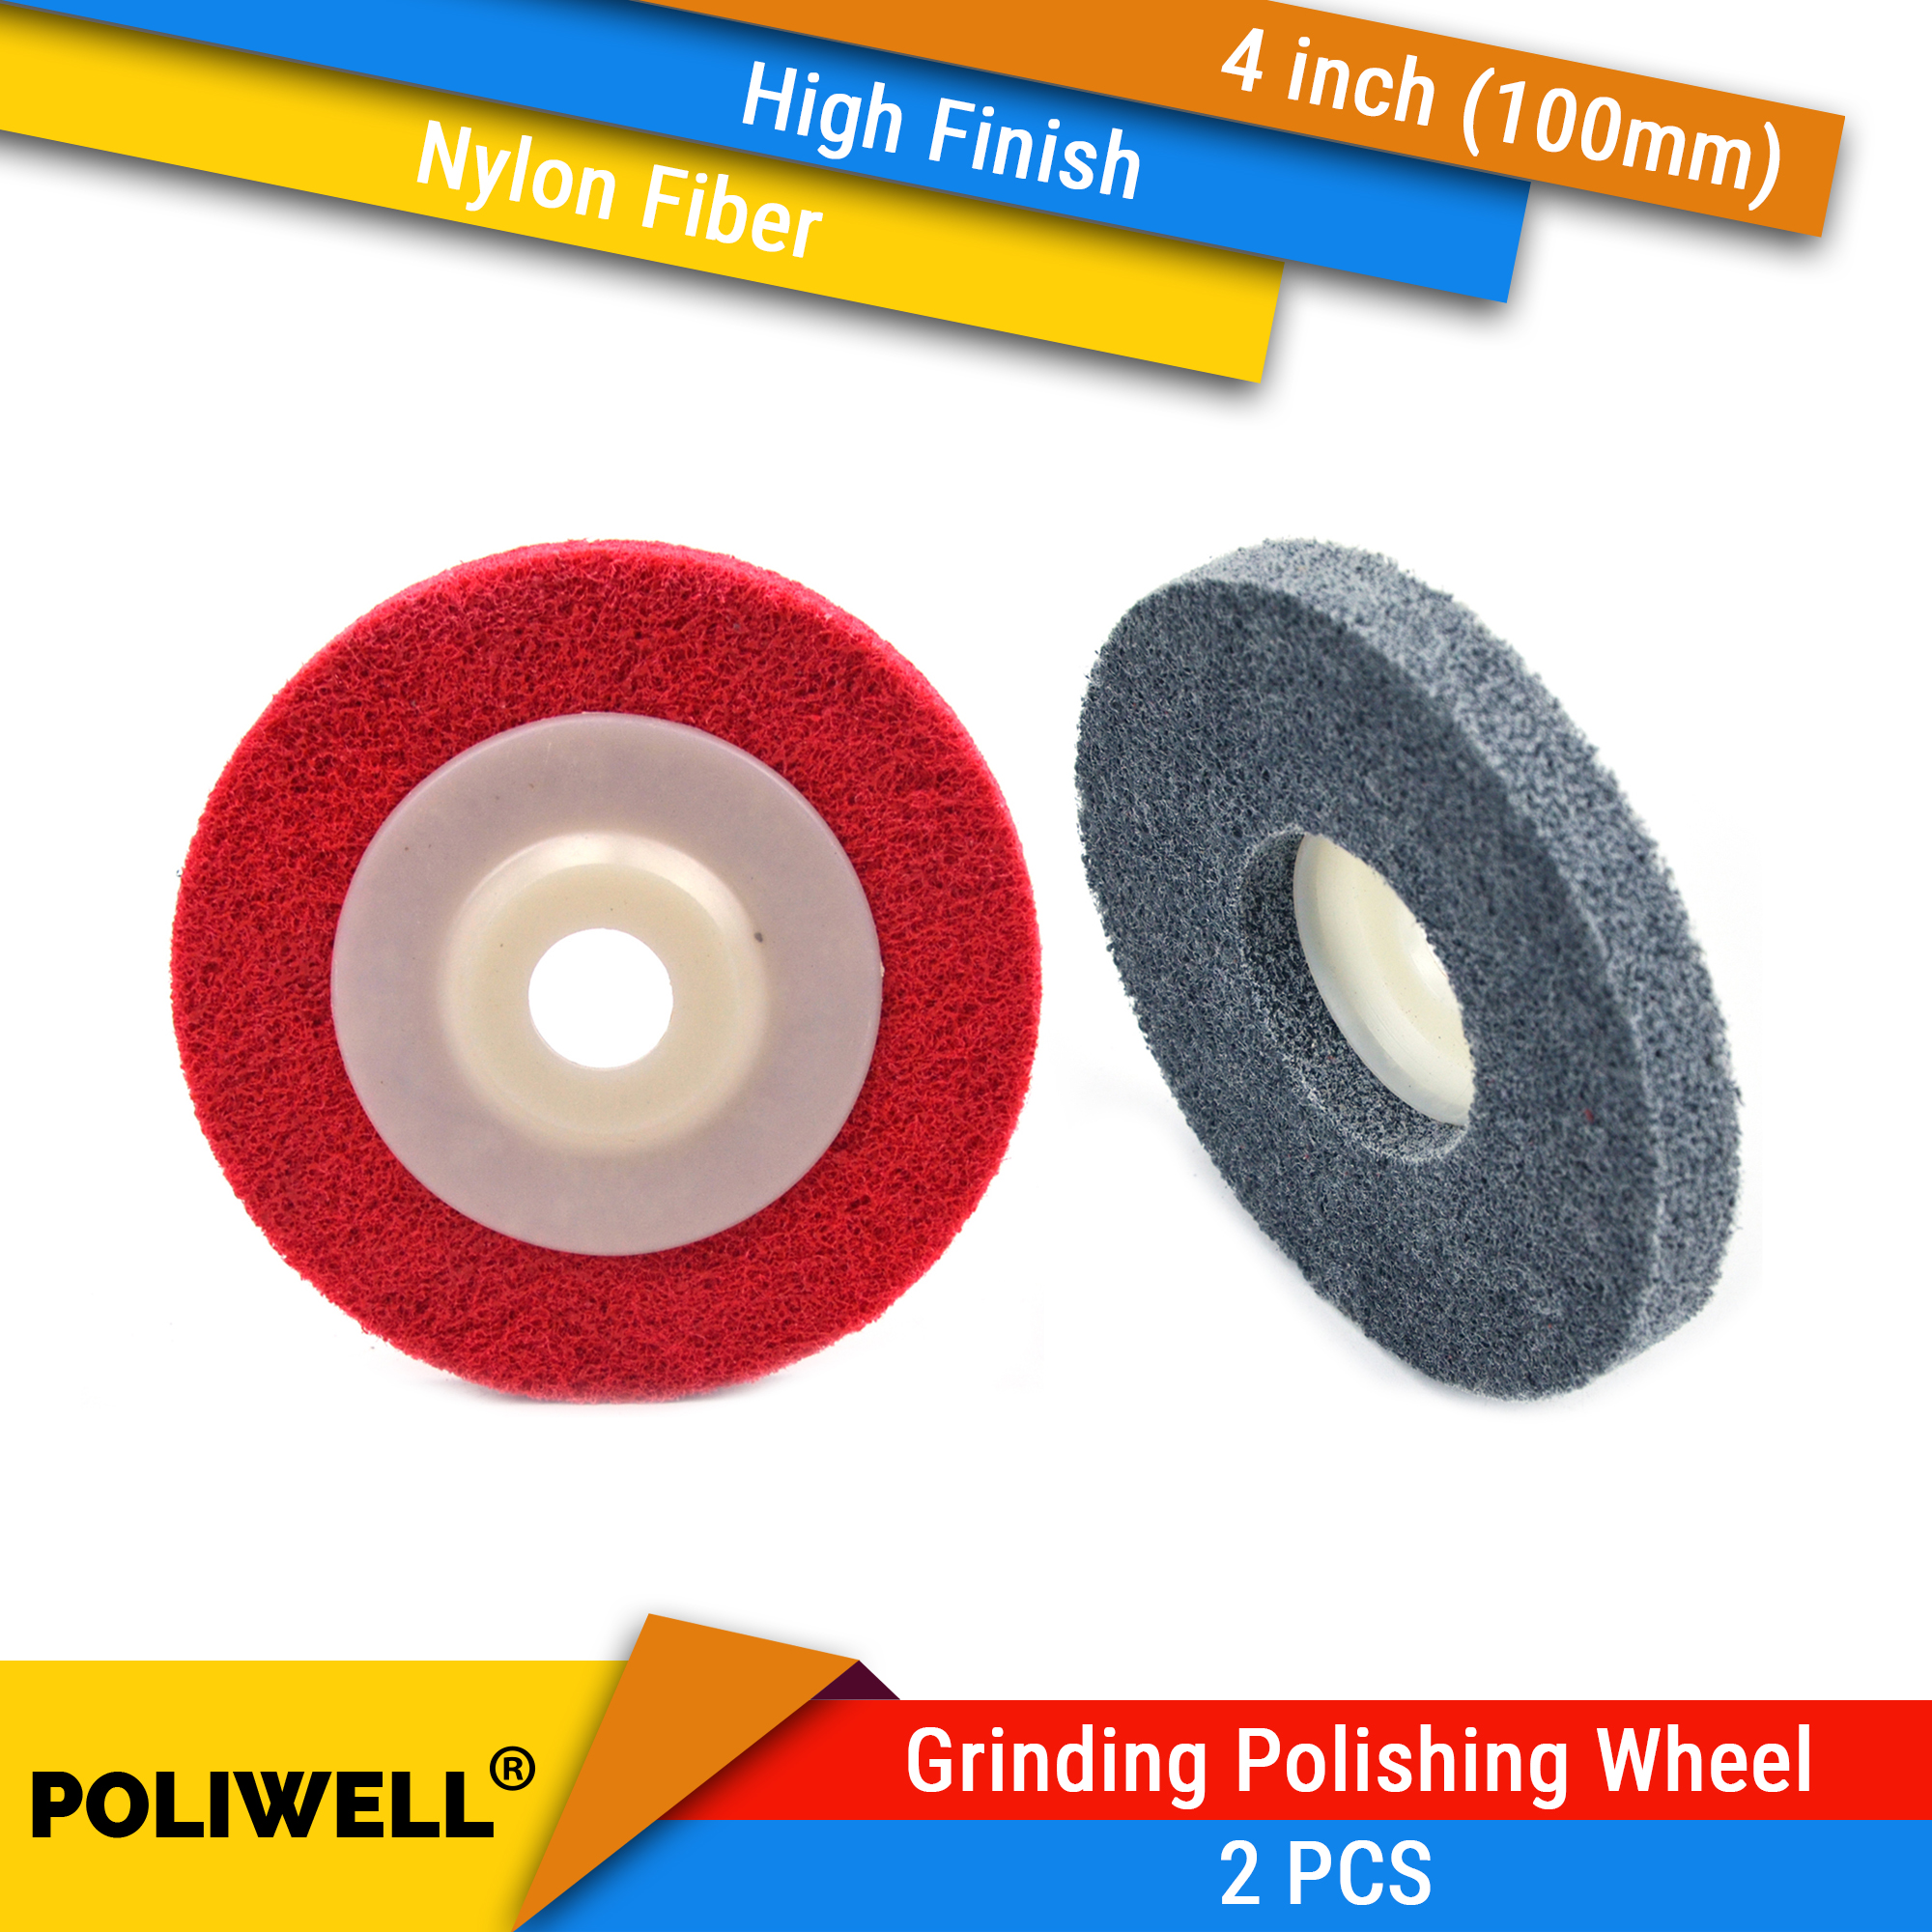 2 PCS 100mm Red And Grey Nylon Fiber Polishing Wheel Grinding Disc Abrasive Tools Materials Surface Decoration For Angle Grinder